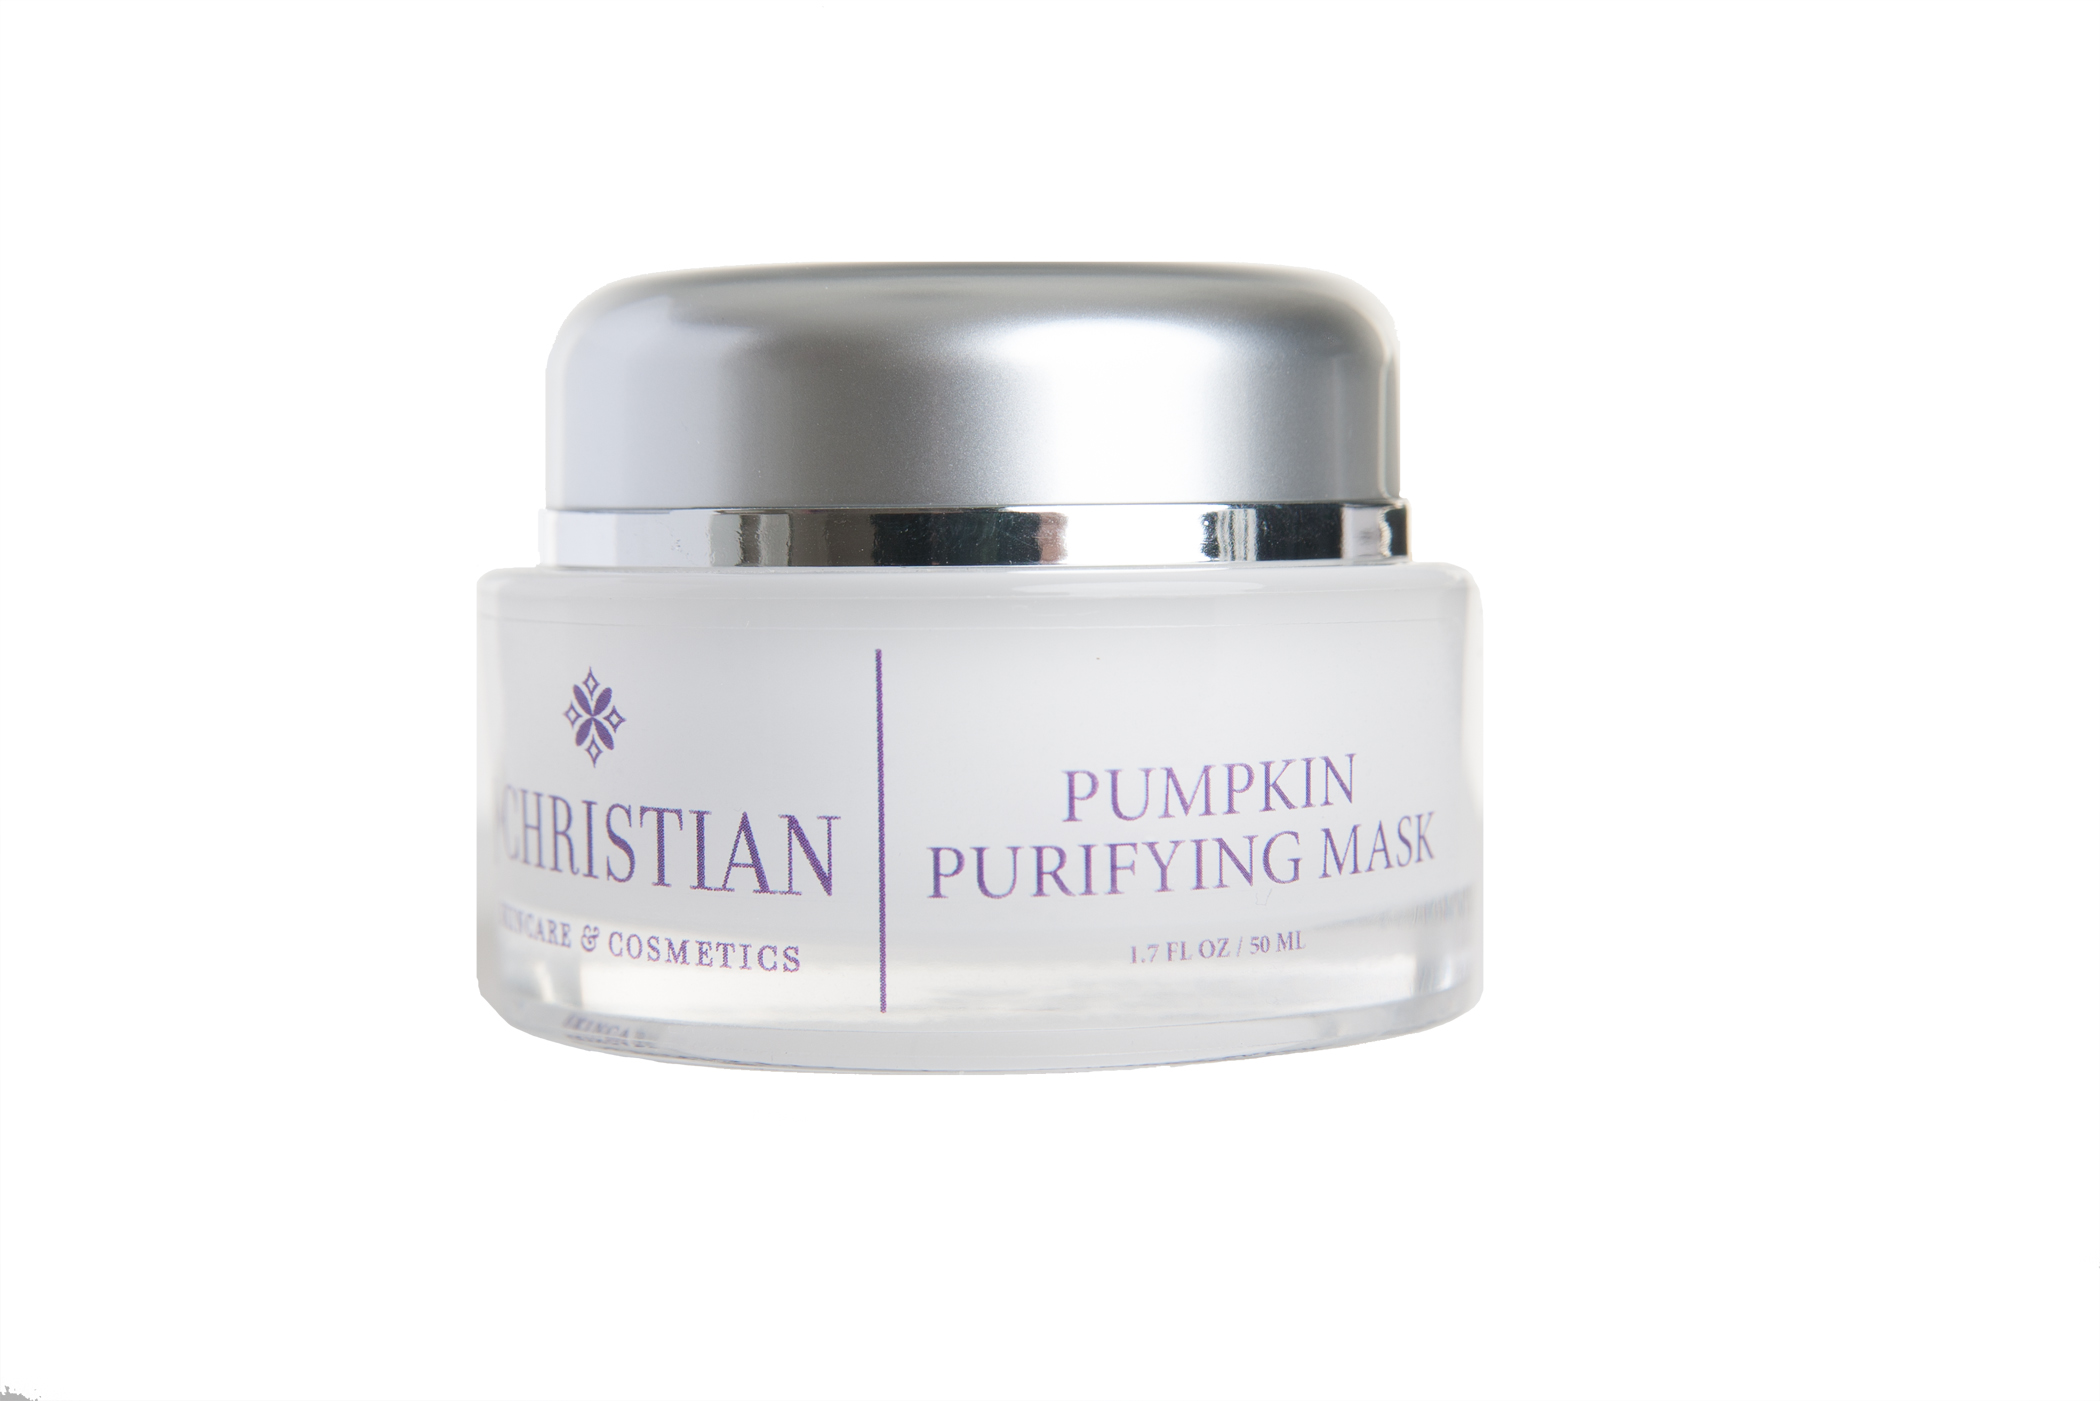 Pumpkin Purifying Mask